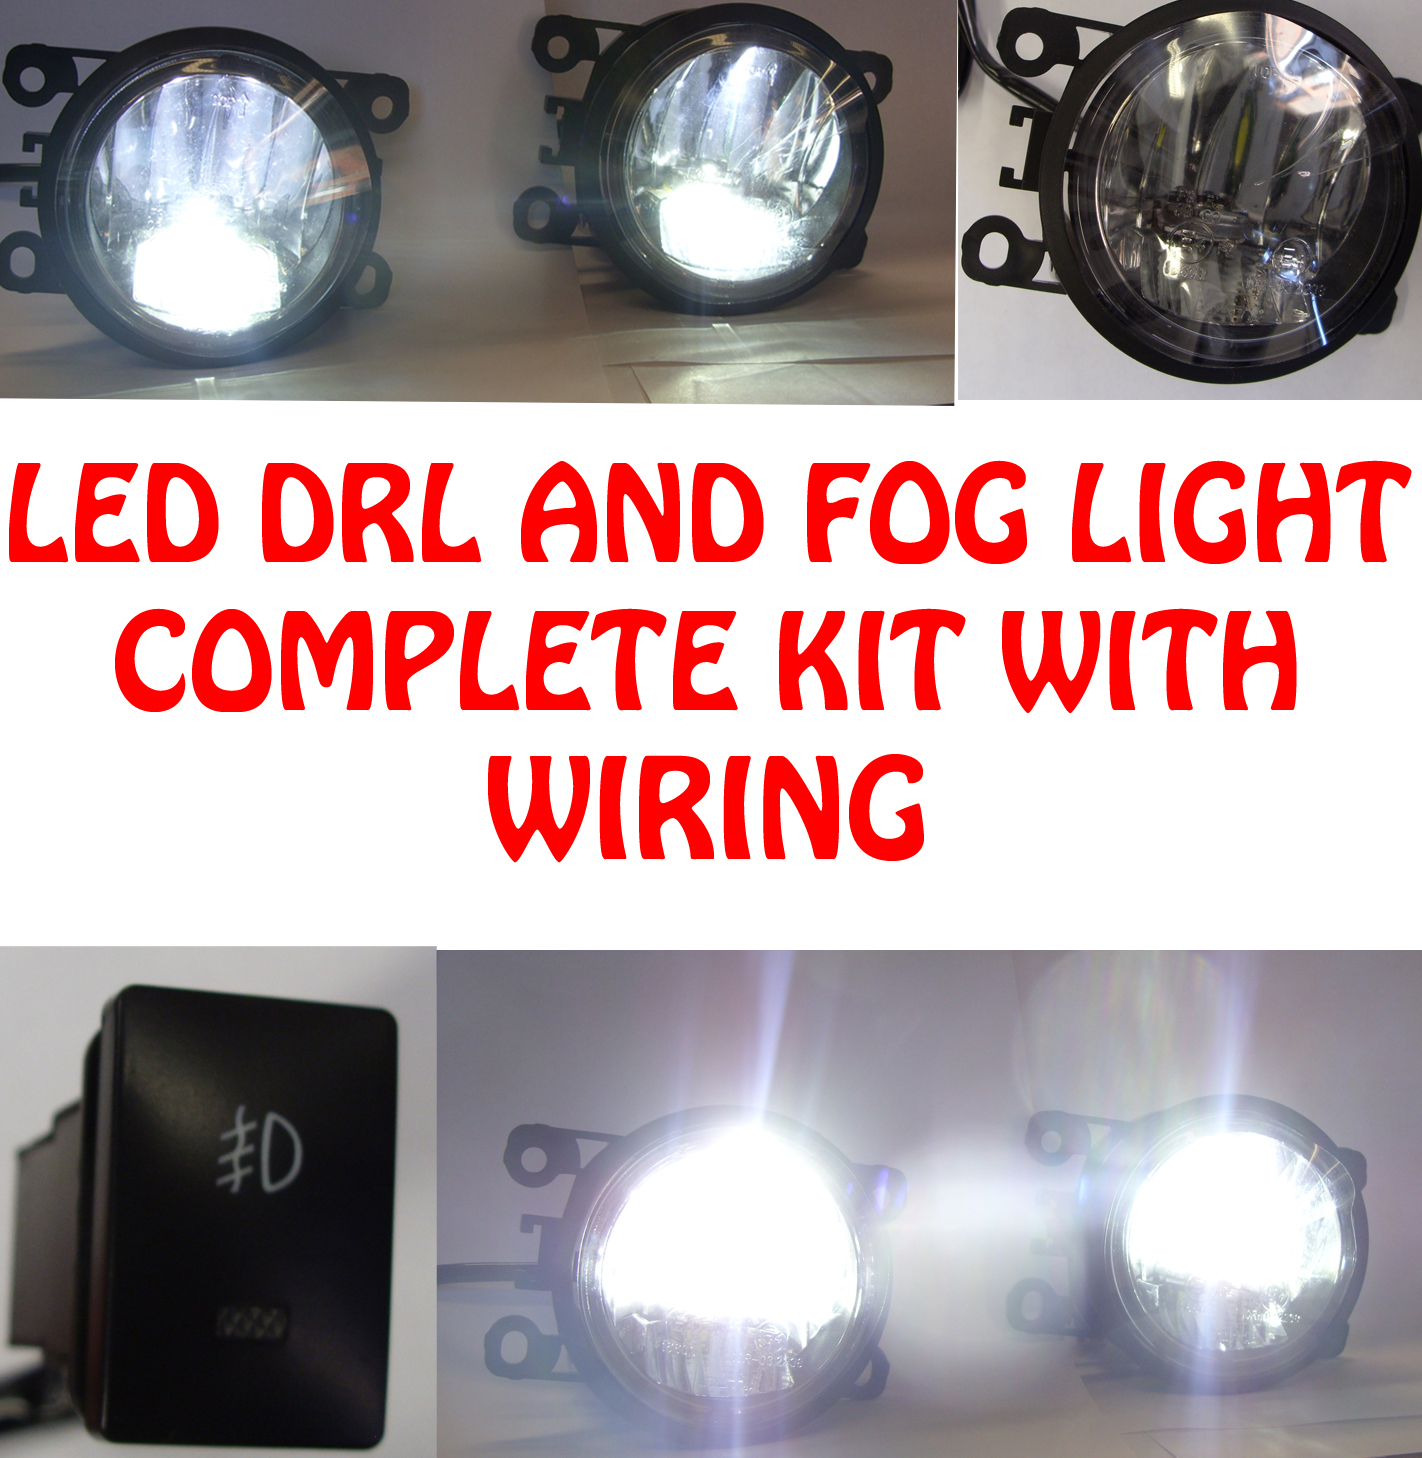 high power led drl and fog lights with wiring and switch Waterproof LED Switch Wiring Diagram Wiring LED Switch PC Drawing